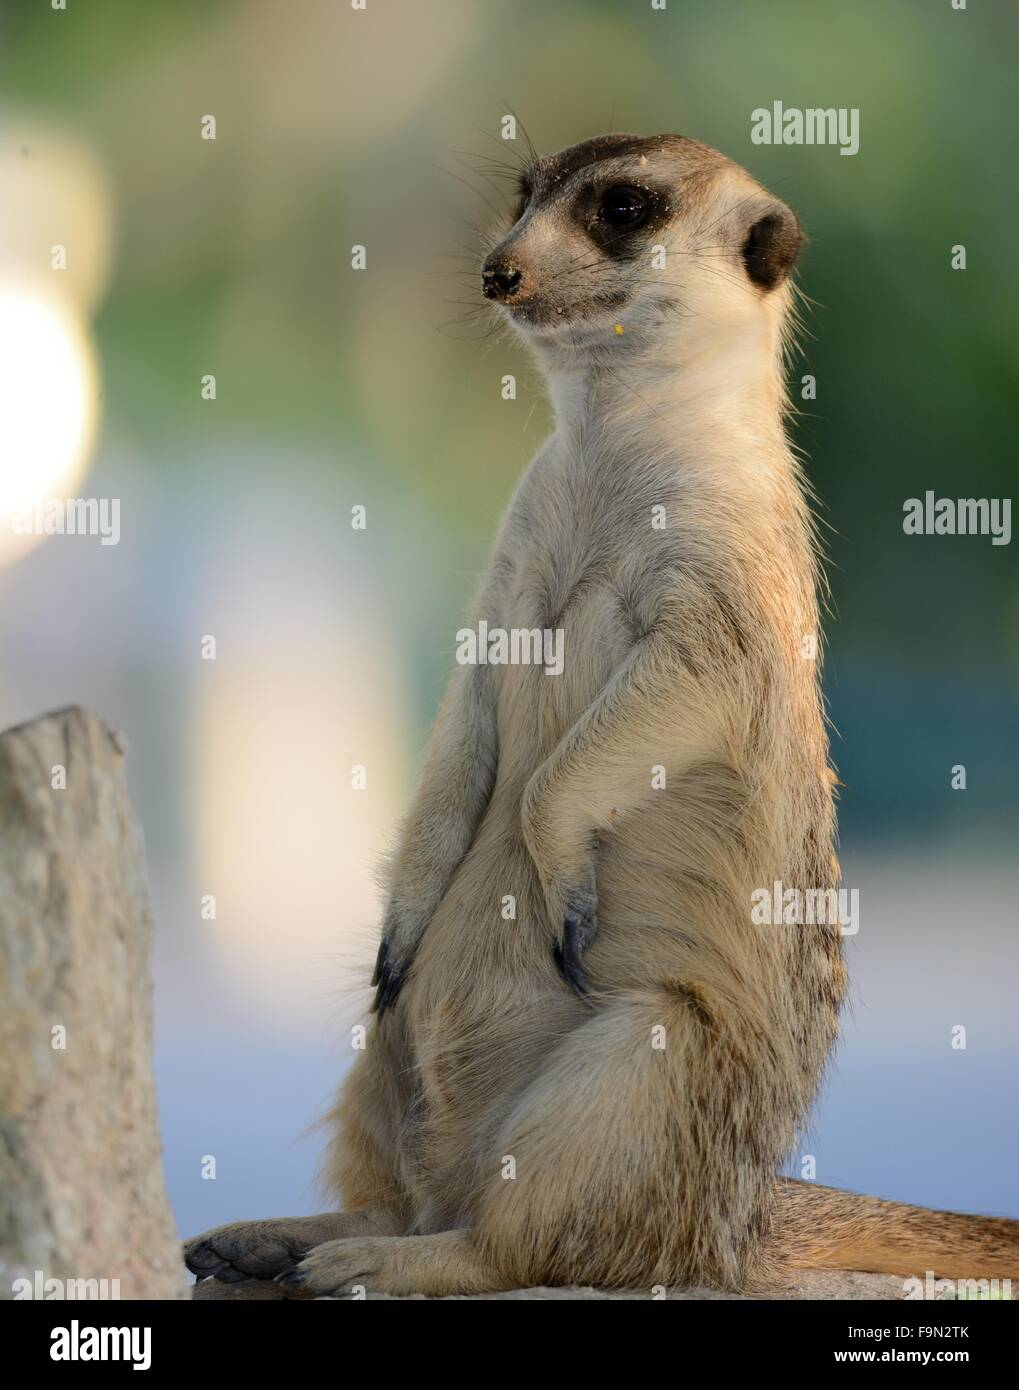 hand feeding beautiful Meerkat (Suricata suricatta) in Thai zoo - Stock Image